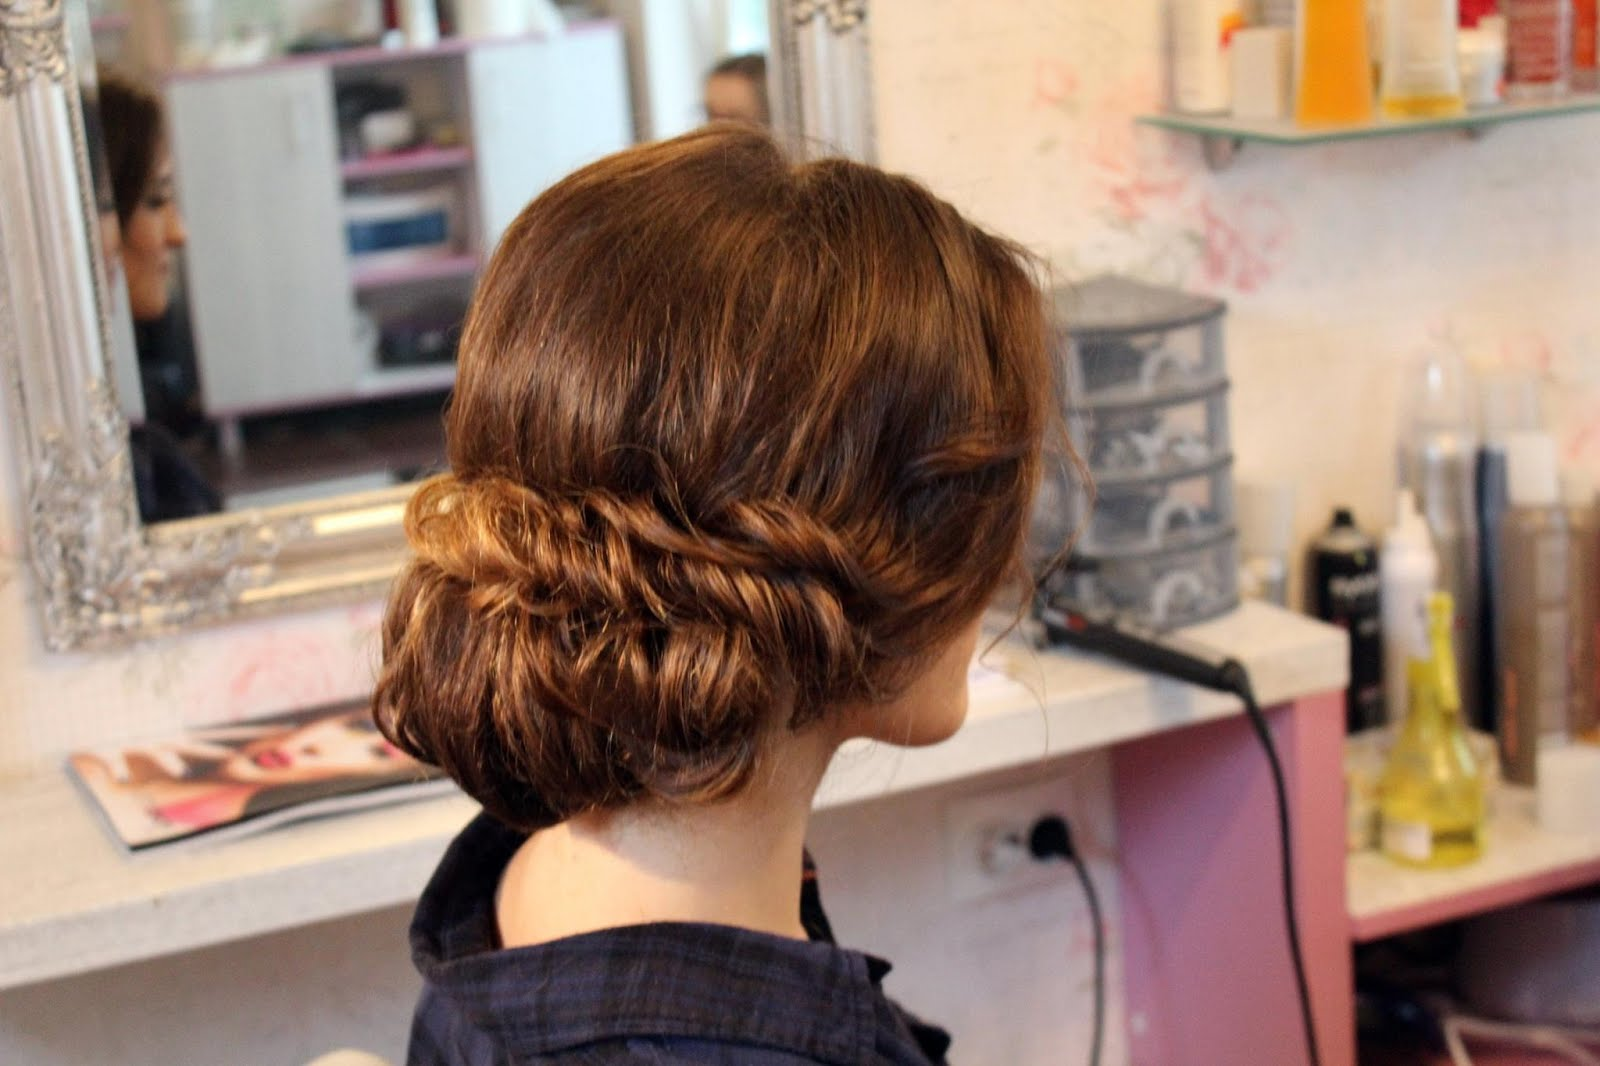 Hair Styles That Are In: Beautiful Hairstyles By Lucy Style, Romania!